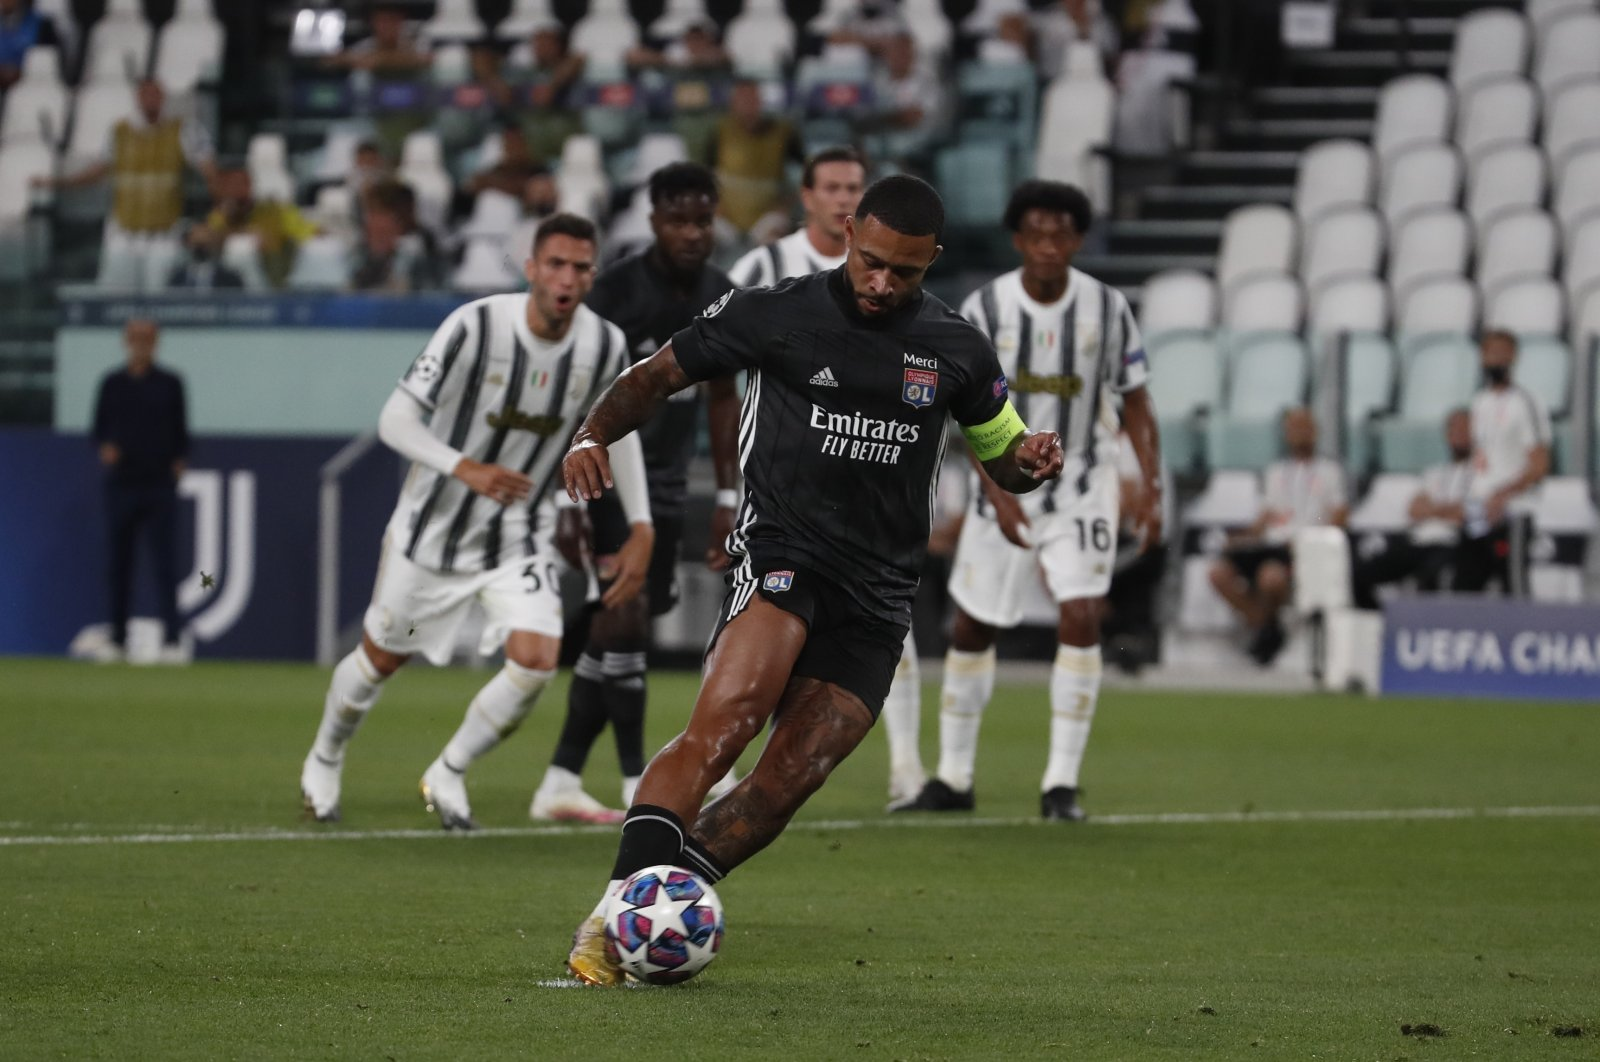 Lyon's Memphis Depay scores a penalty during the Champions League match against Juventus in Turin, Italy, Aug. 7, 2020. (AP Photo)